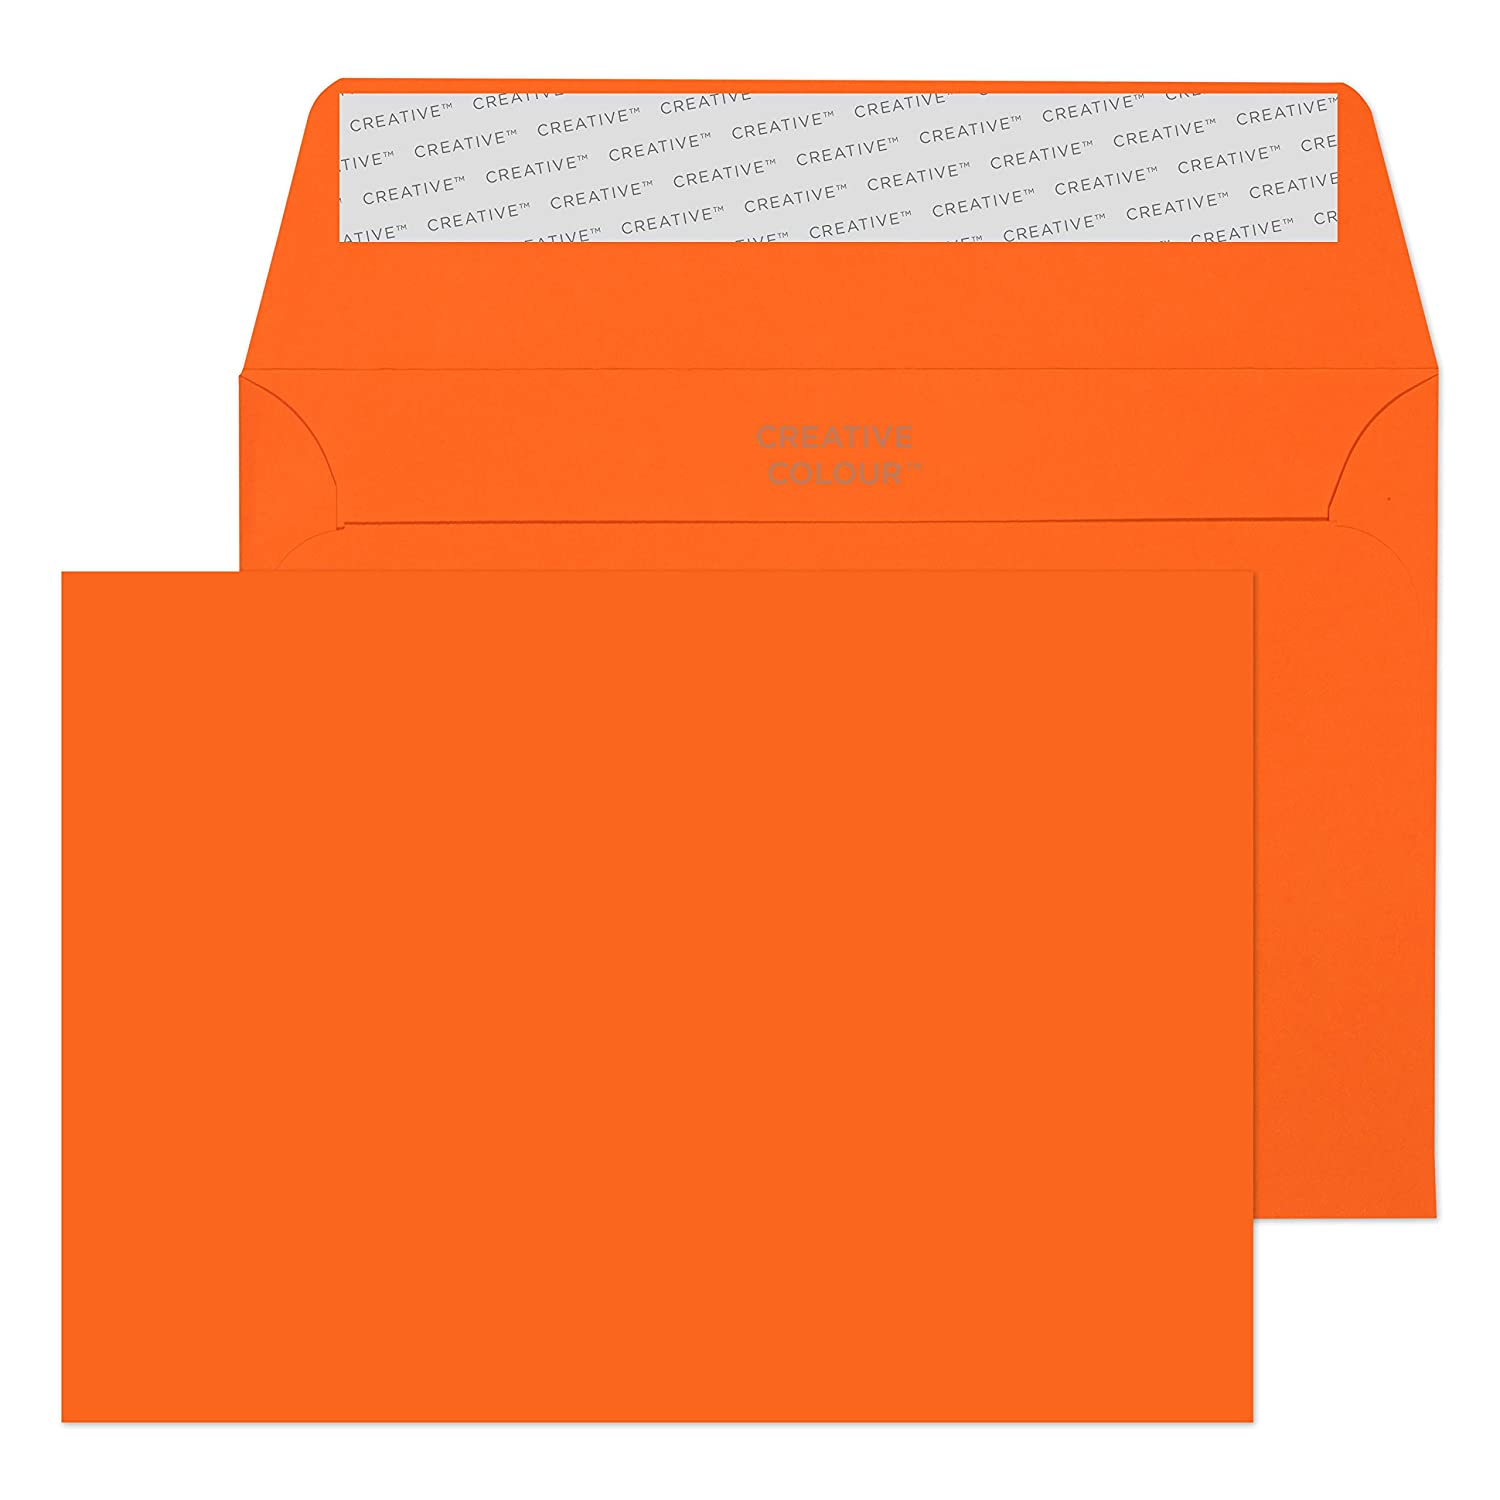 Blake Creative Color, Bright Red Invitation Envelopes, 4 1/2 x 6 3/8 Inches, Fire Engine Red, 80lb Paper, Peel & Seal (106-76) - Pack of 500